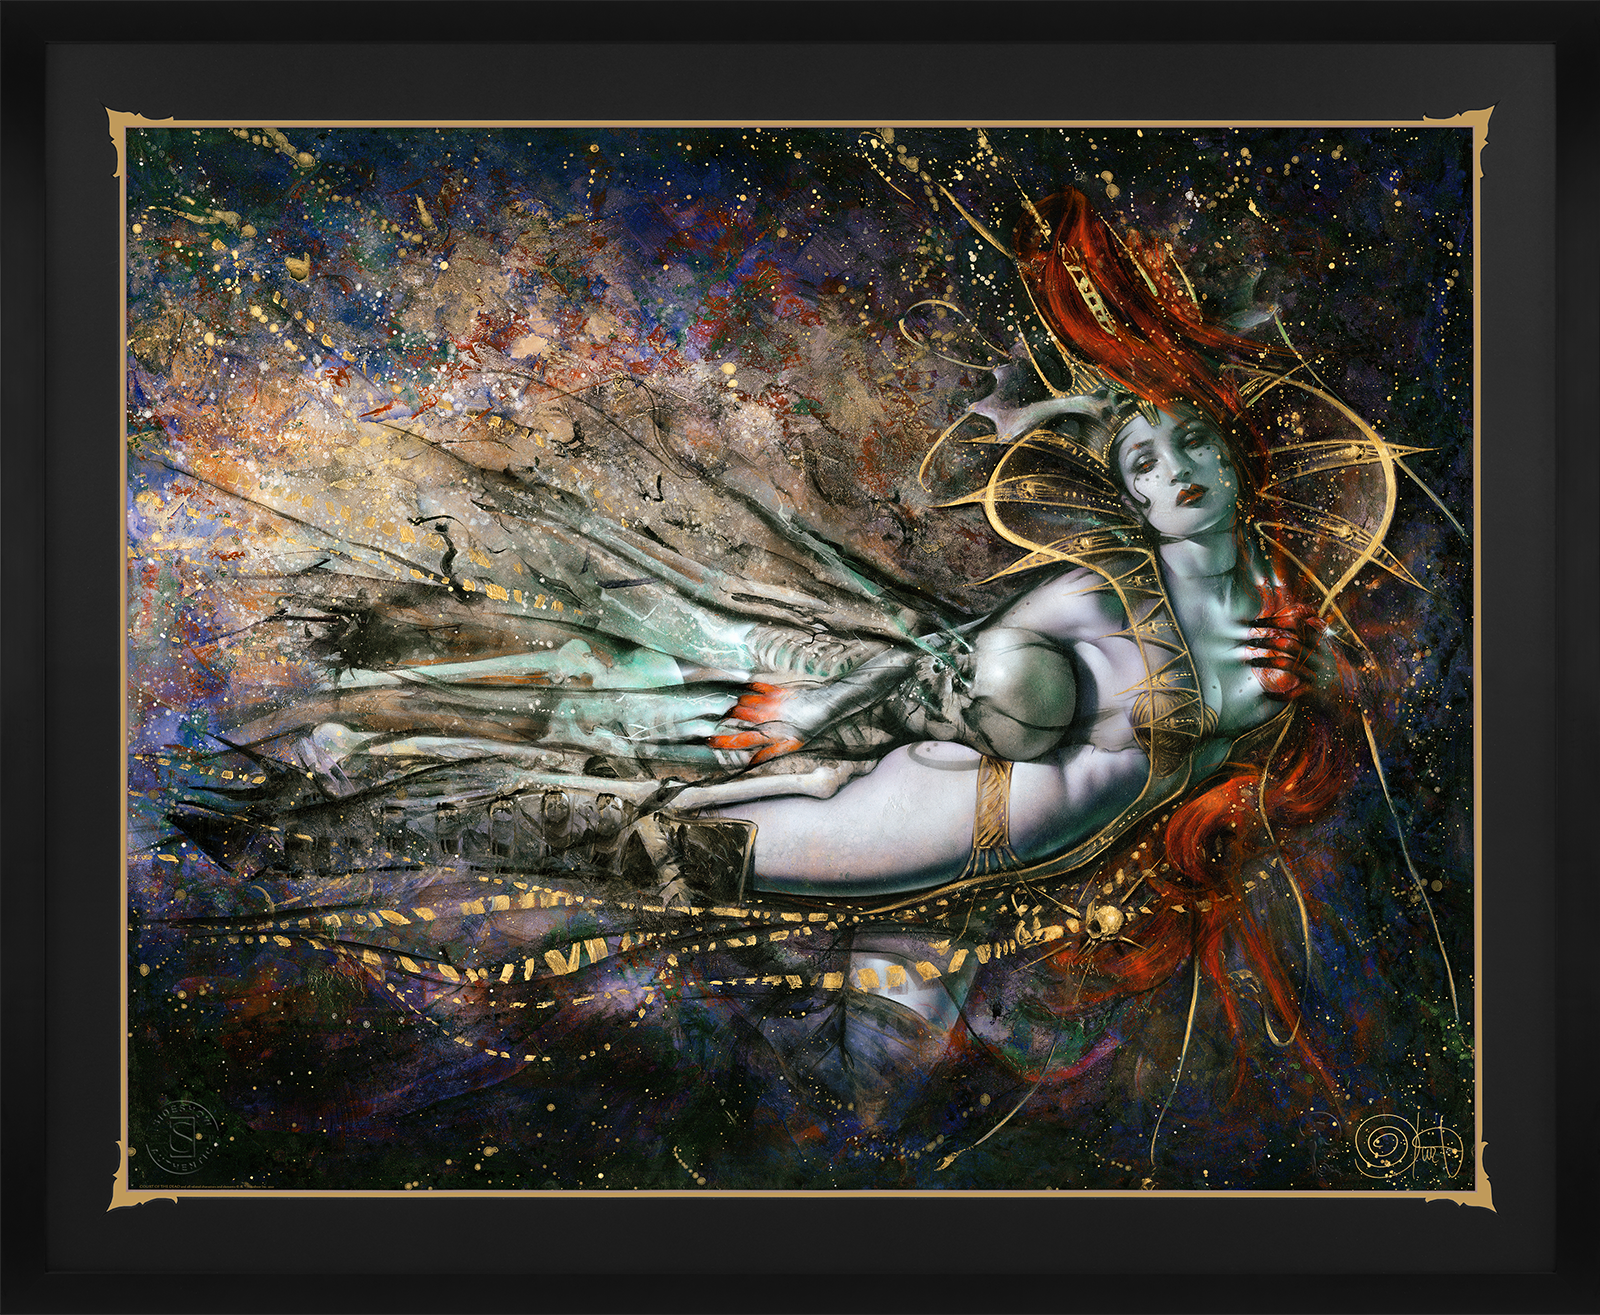 Ozone Productions The Queen's Embrace Variant Art Print